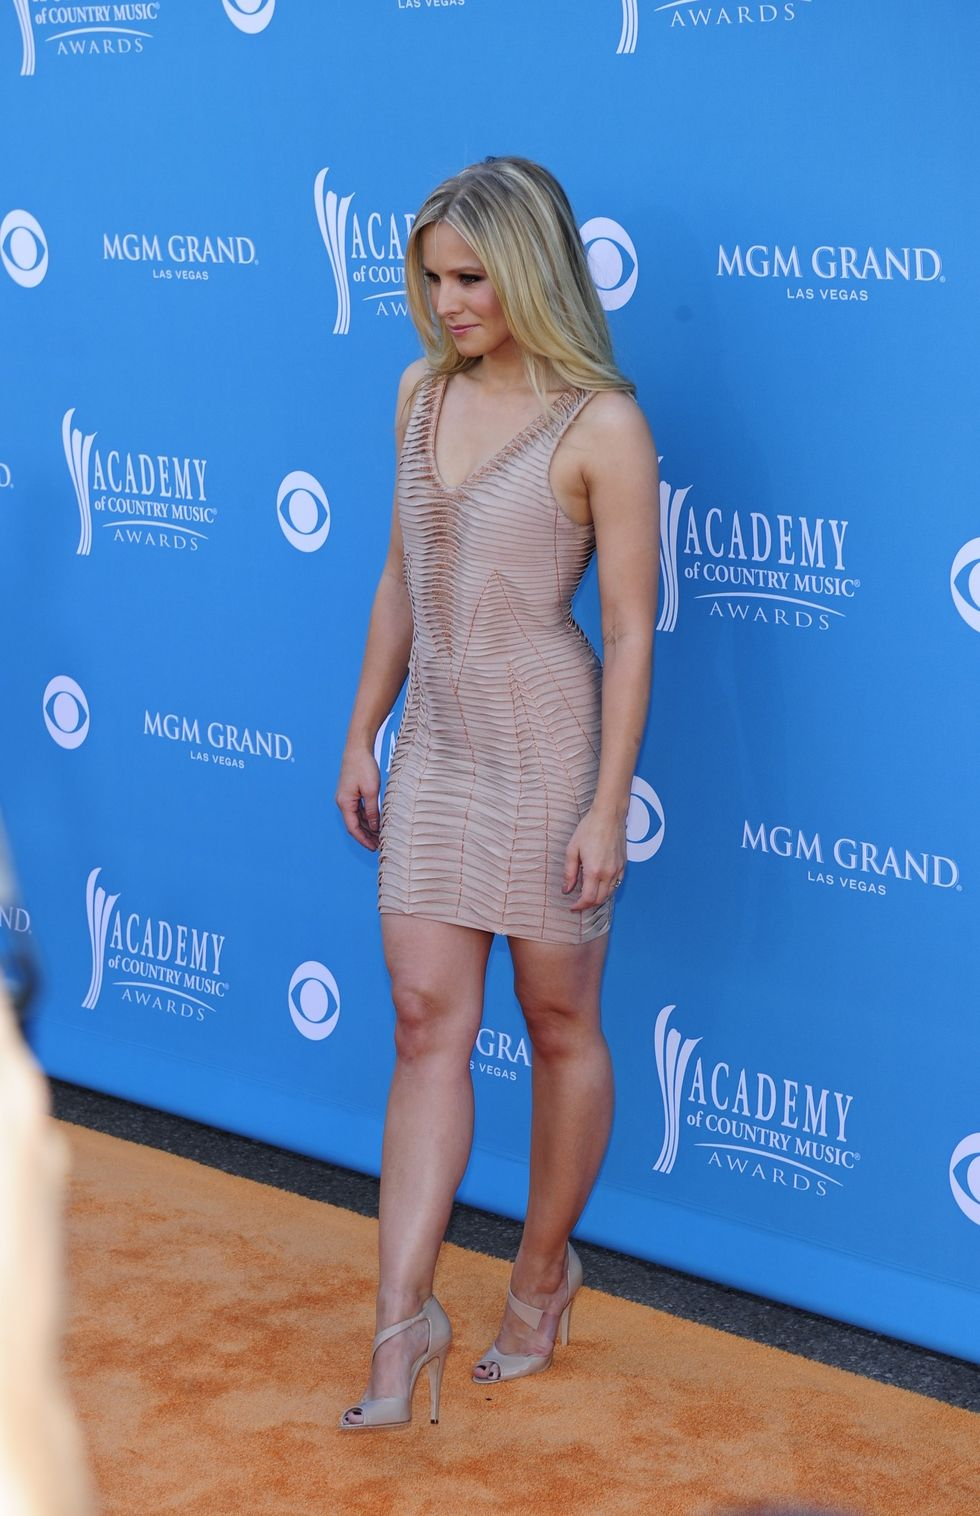 Kristen Bell 2010 : kristen-bell-at-45th-annual-academy-of-country-music-awards-04